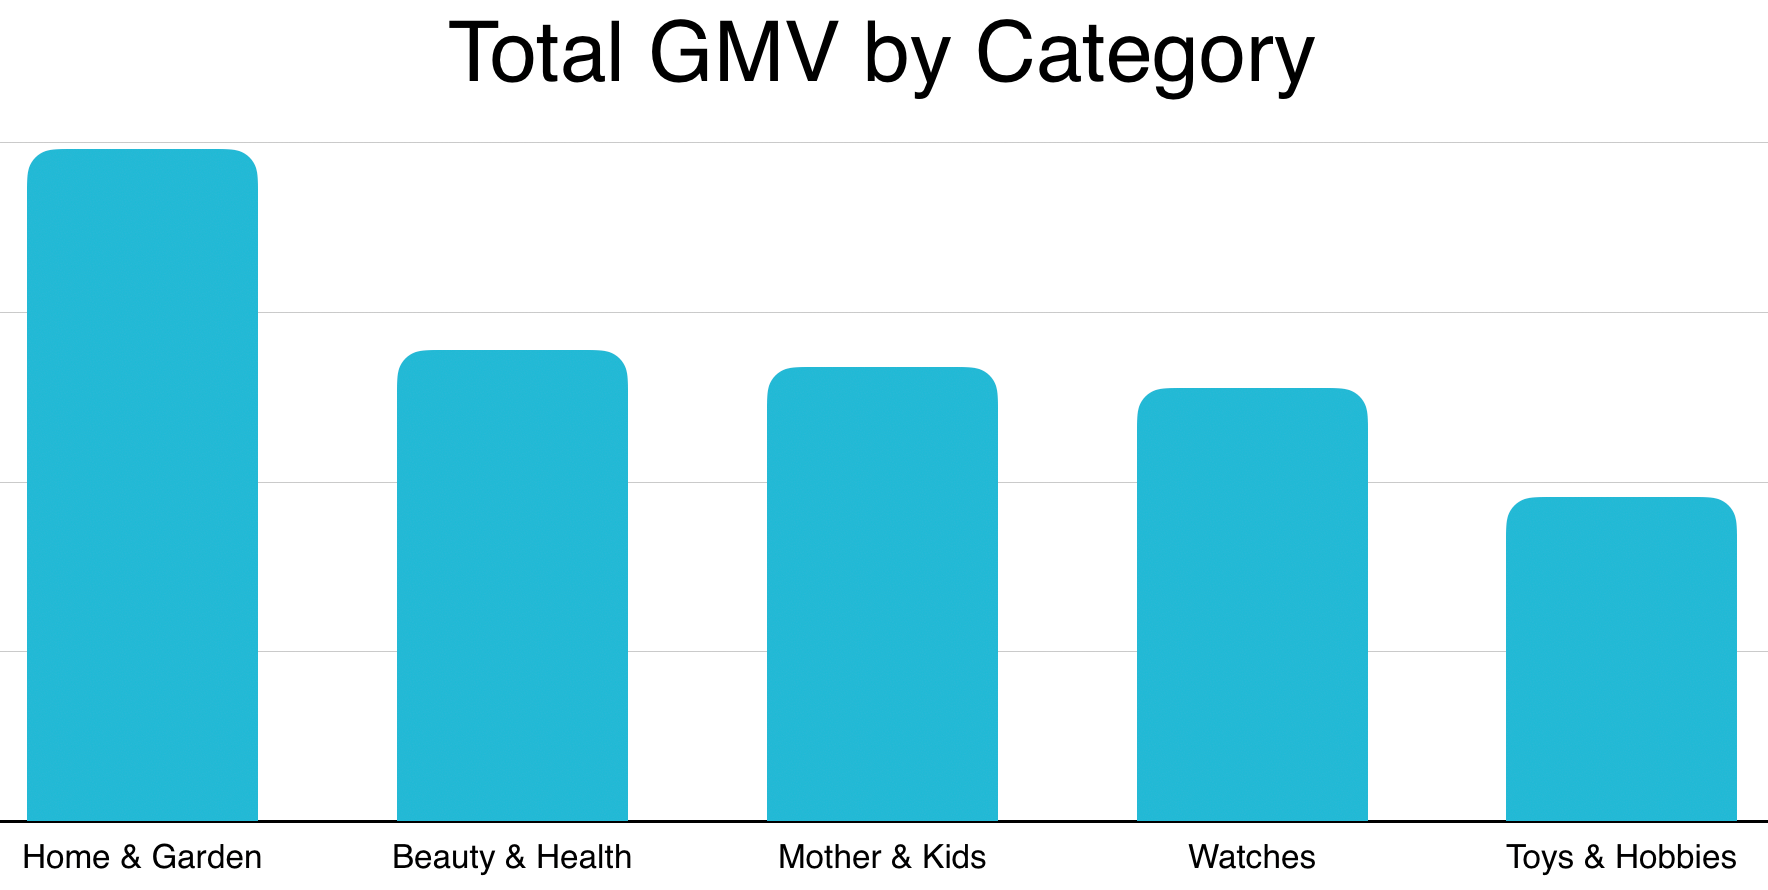 2019 Niche Brazilian Markets by GMV